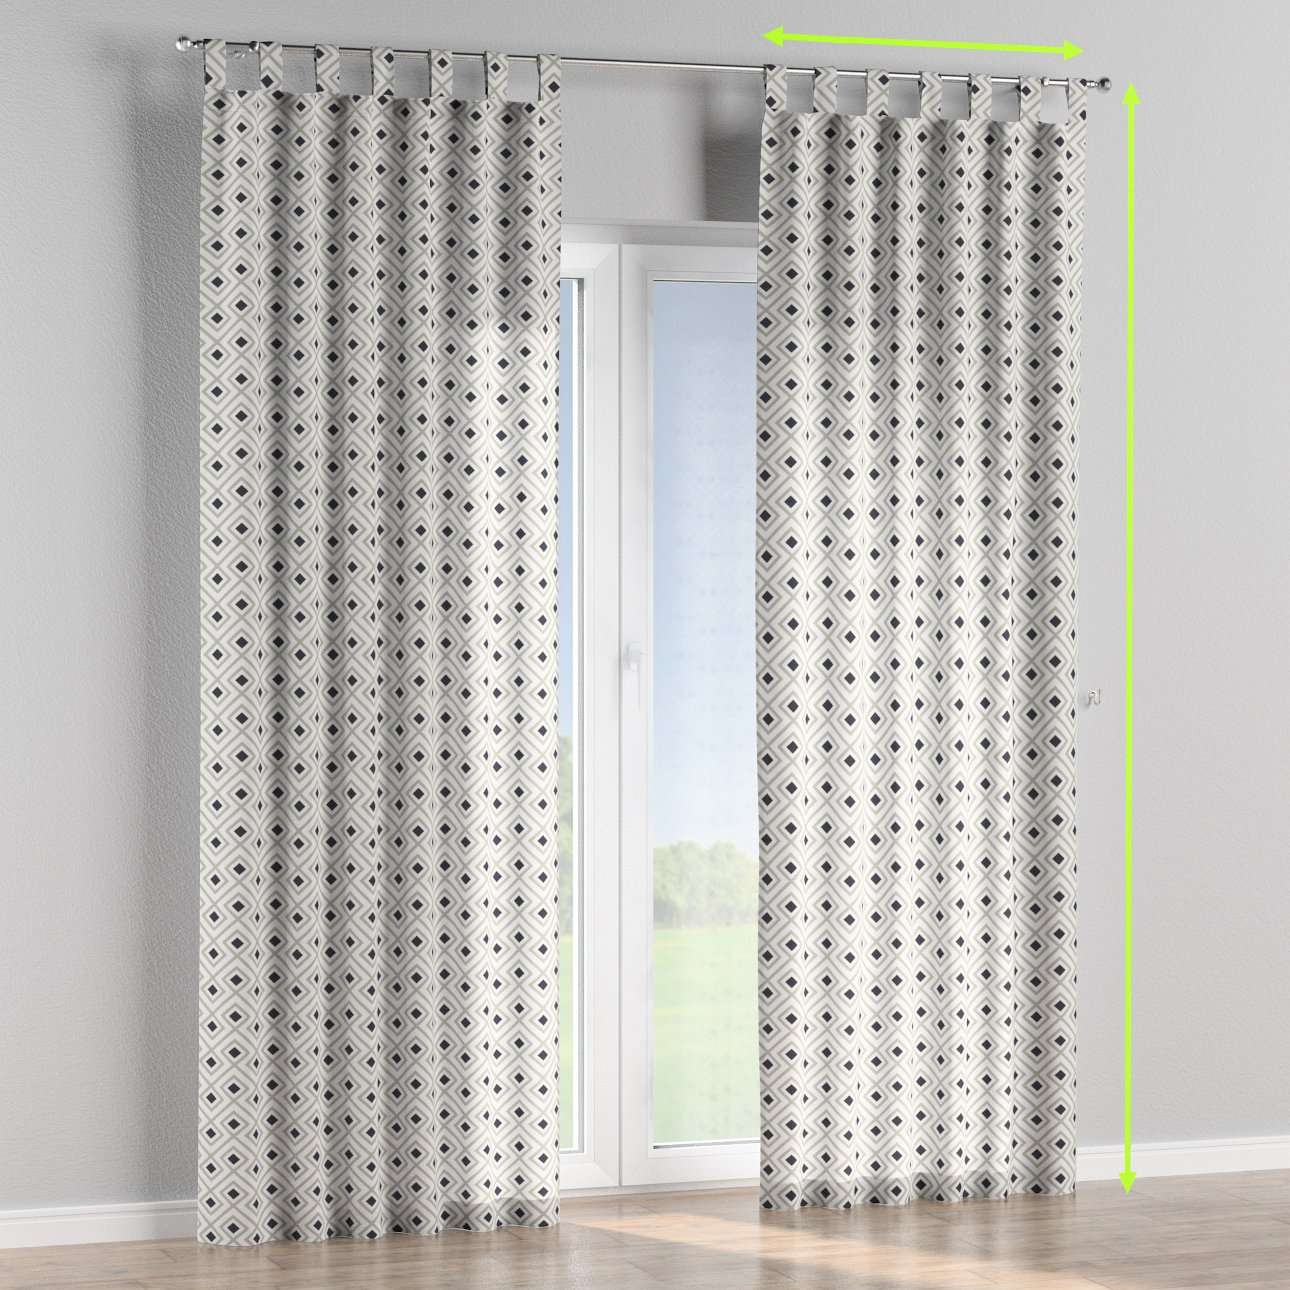 Tab top curtains in collection Geometric, fabric: 141-44